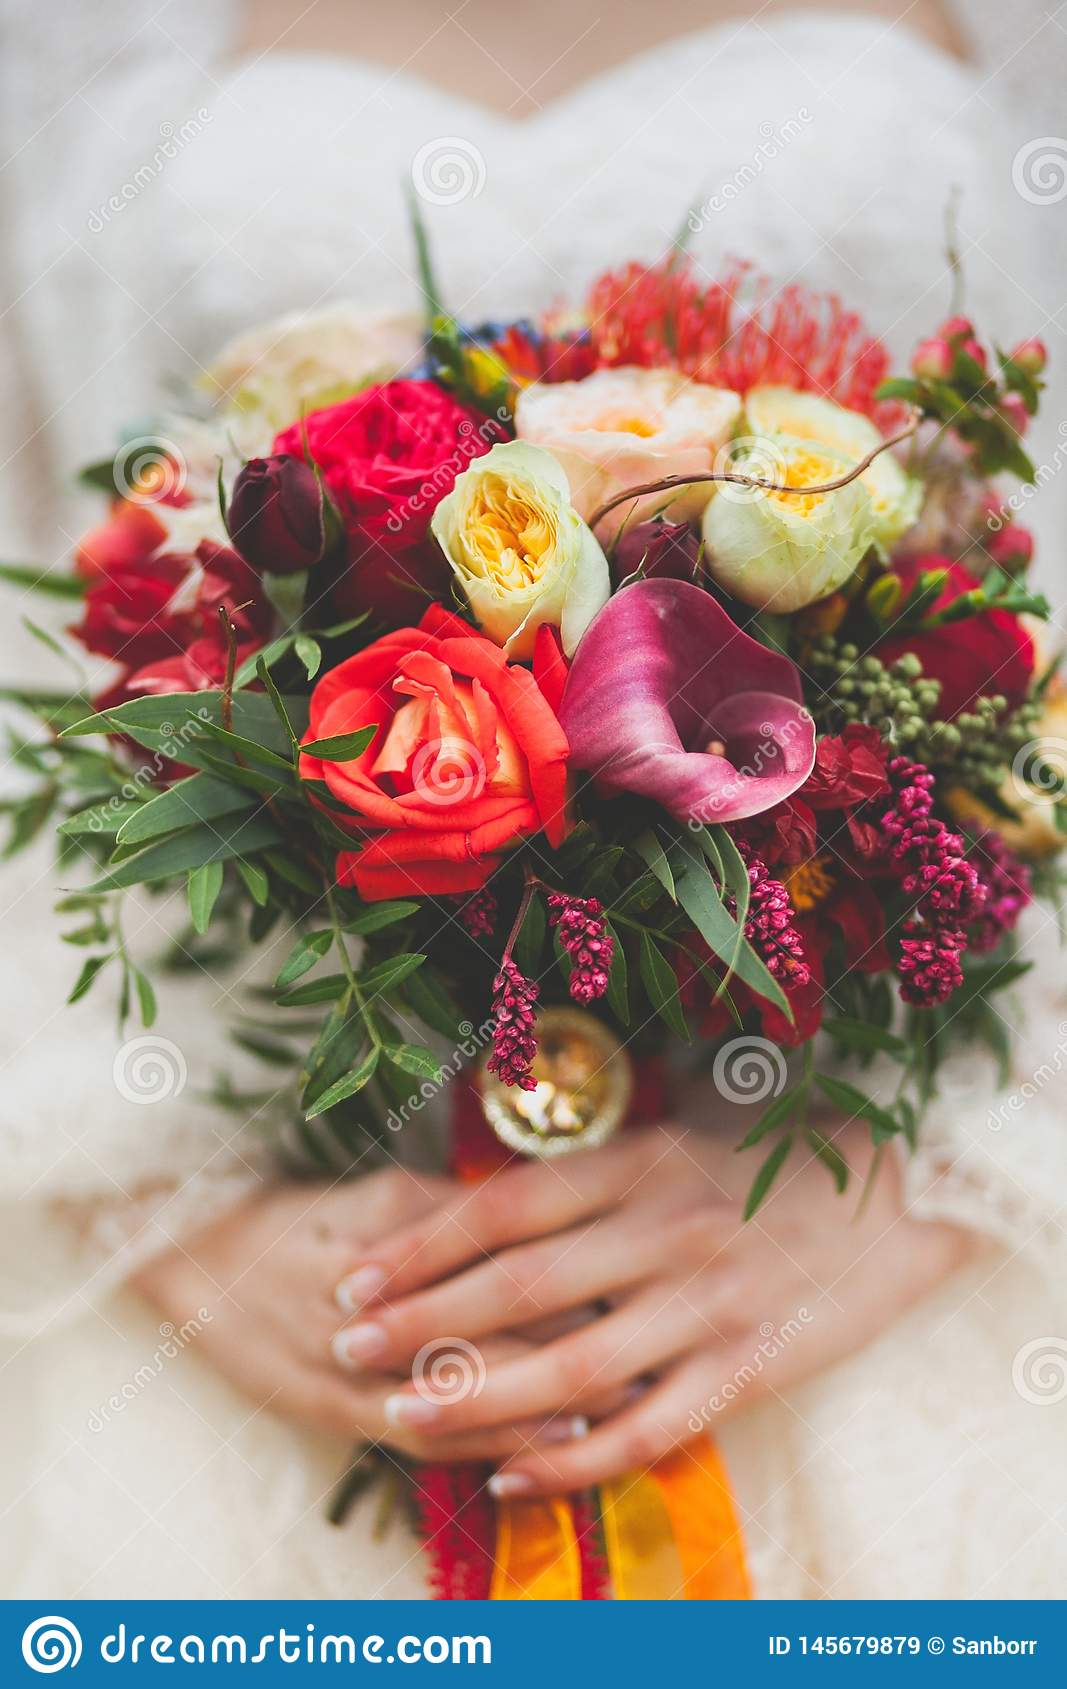 The bride in a beautiful white wedding dress holds a beautiful autumn wedding bouquet. Beautifully decorated multi-colored bouquet